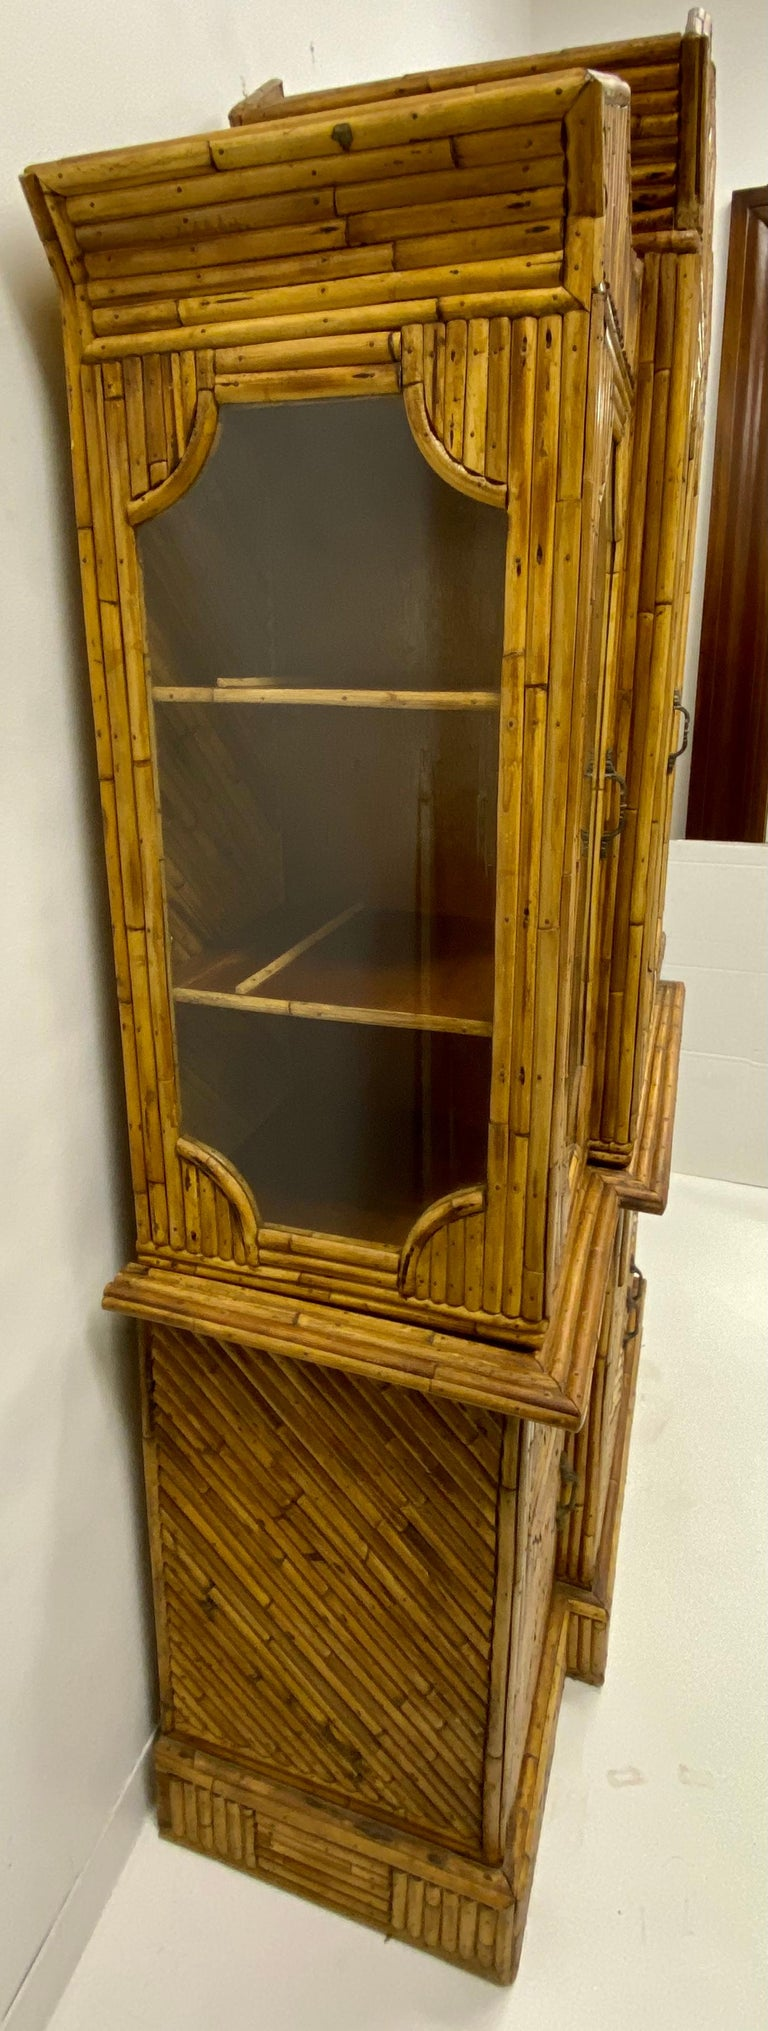 1960s Chinese Chippendale Style Pencil Bamboo Cabinet In Good Condition For Sale In Kennesaw, GA